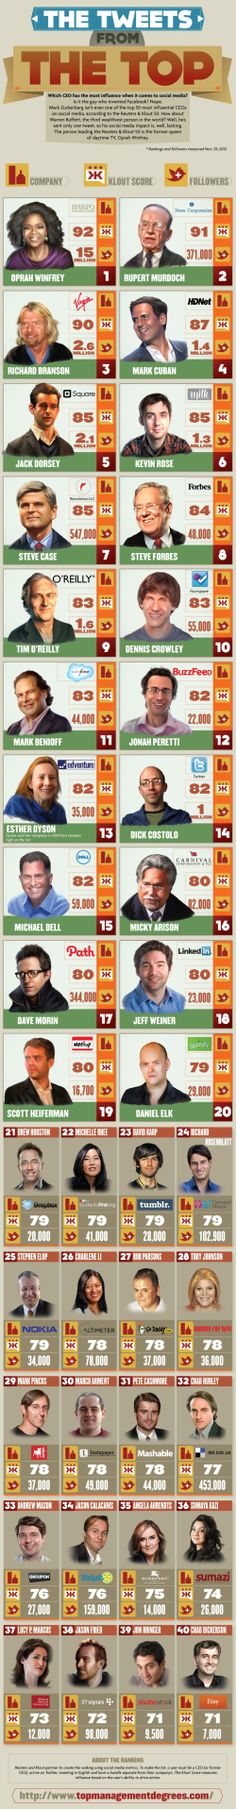 Which CEO has the more influence over Twitter? #Forbes #Klout #Influence #Entrepreneurs #Infographics #SocialMedia